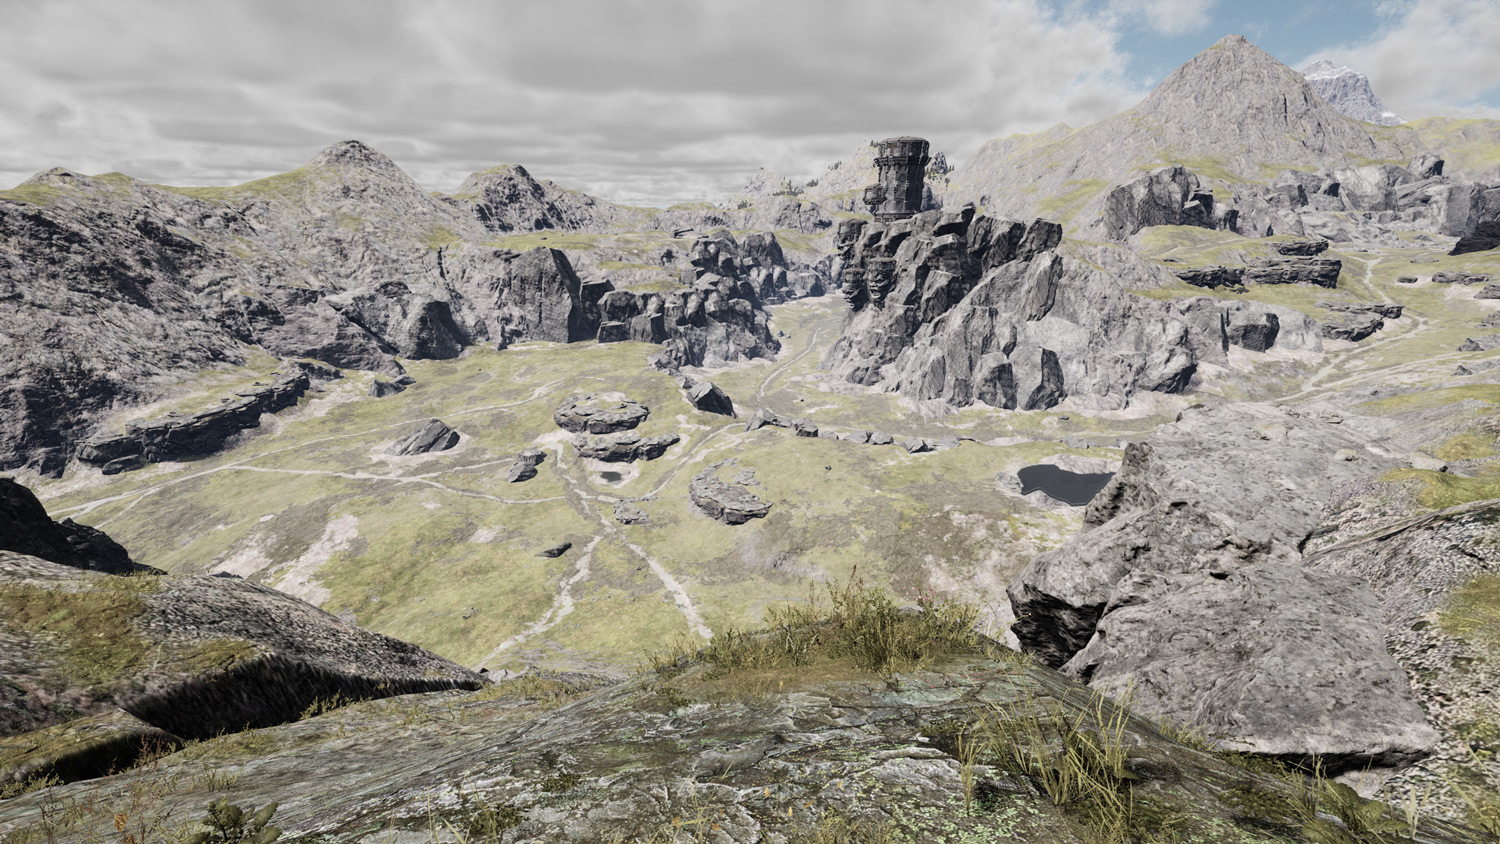 Mortal Online Map - Mage Valley